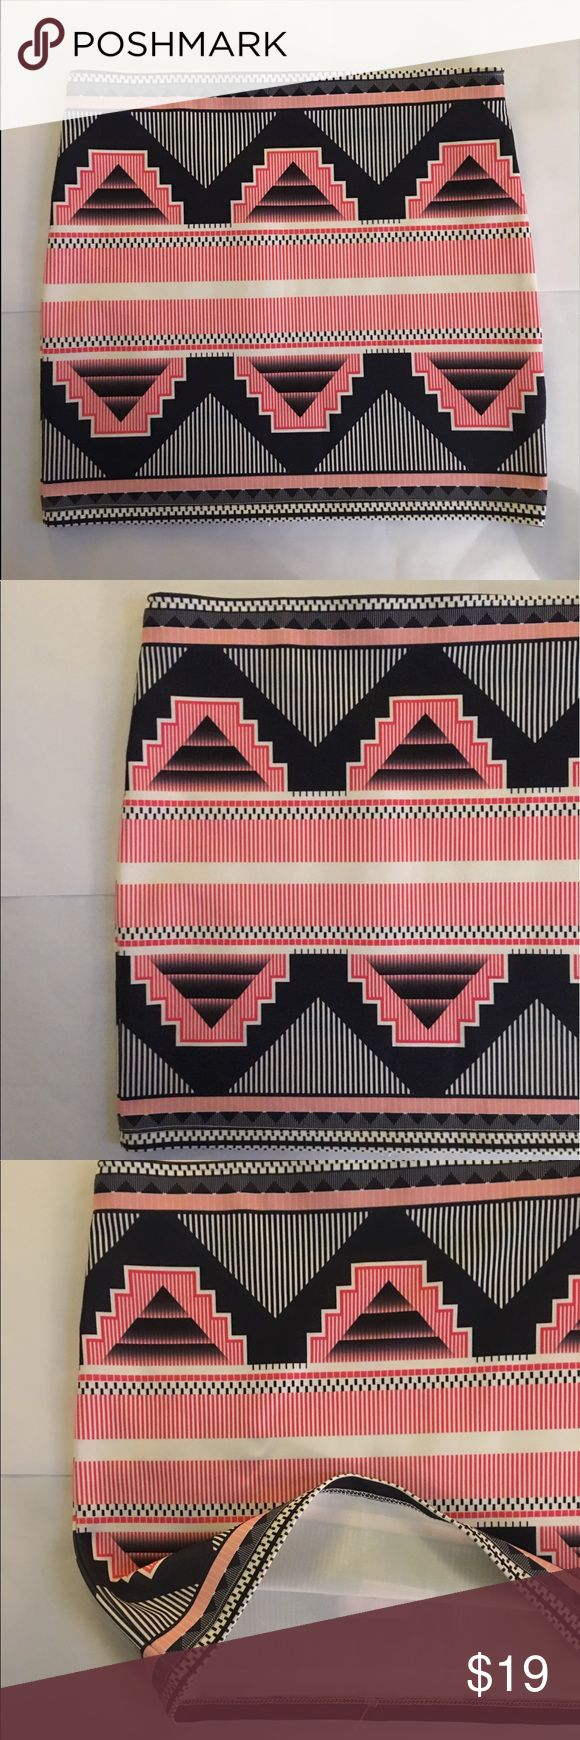 """ZARA TRAFALUC RWB Geometric Aztec Print Skirt SZM ZARA TRAFALUC Red, white & blue Geometric Aztec Print Skirt SZM  * White, red and blue  * Geometric patterns   * 14"""" length x 14"""" width  * Brand new without tags * Made in Portugal   I am 🙊 ⭐️⭐️⭐️⭐️⭐️ 5-Star rated plus Ship in 48hrs or less 📦! Zara Skirts Mini"""